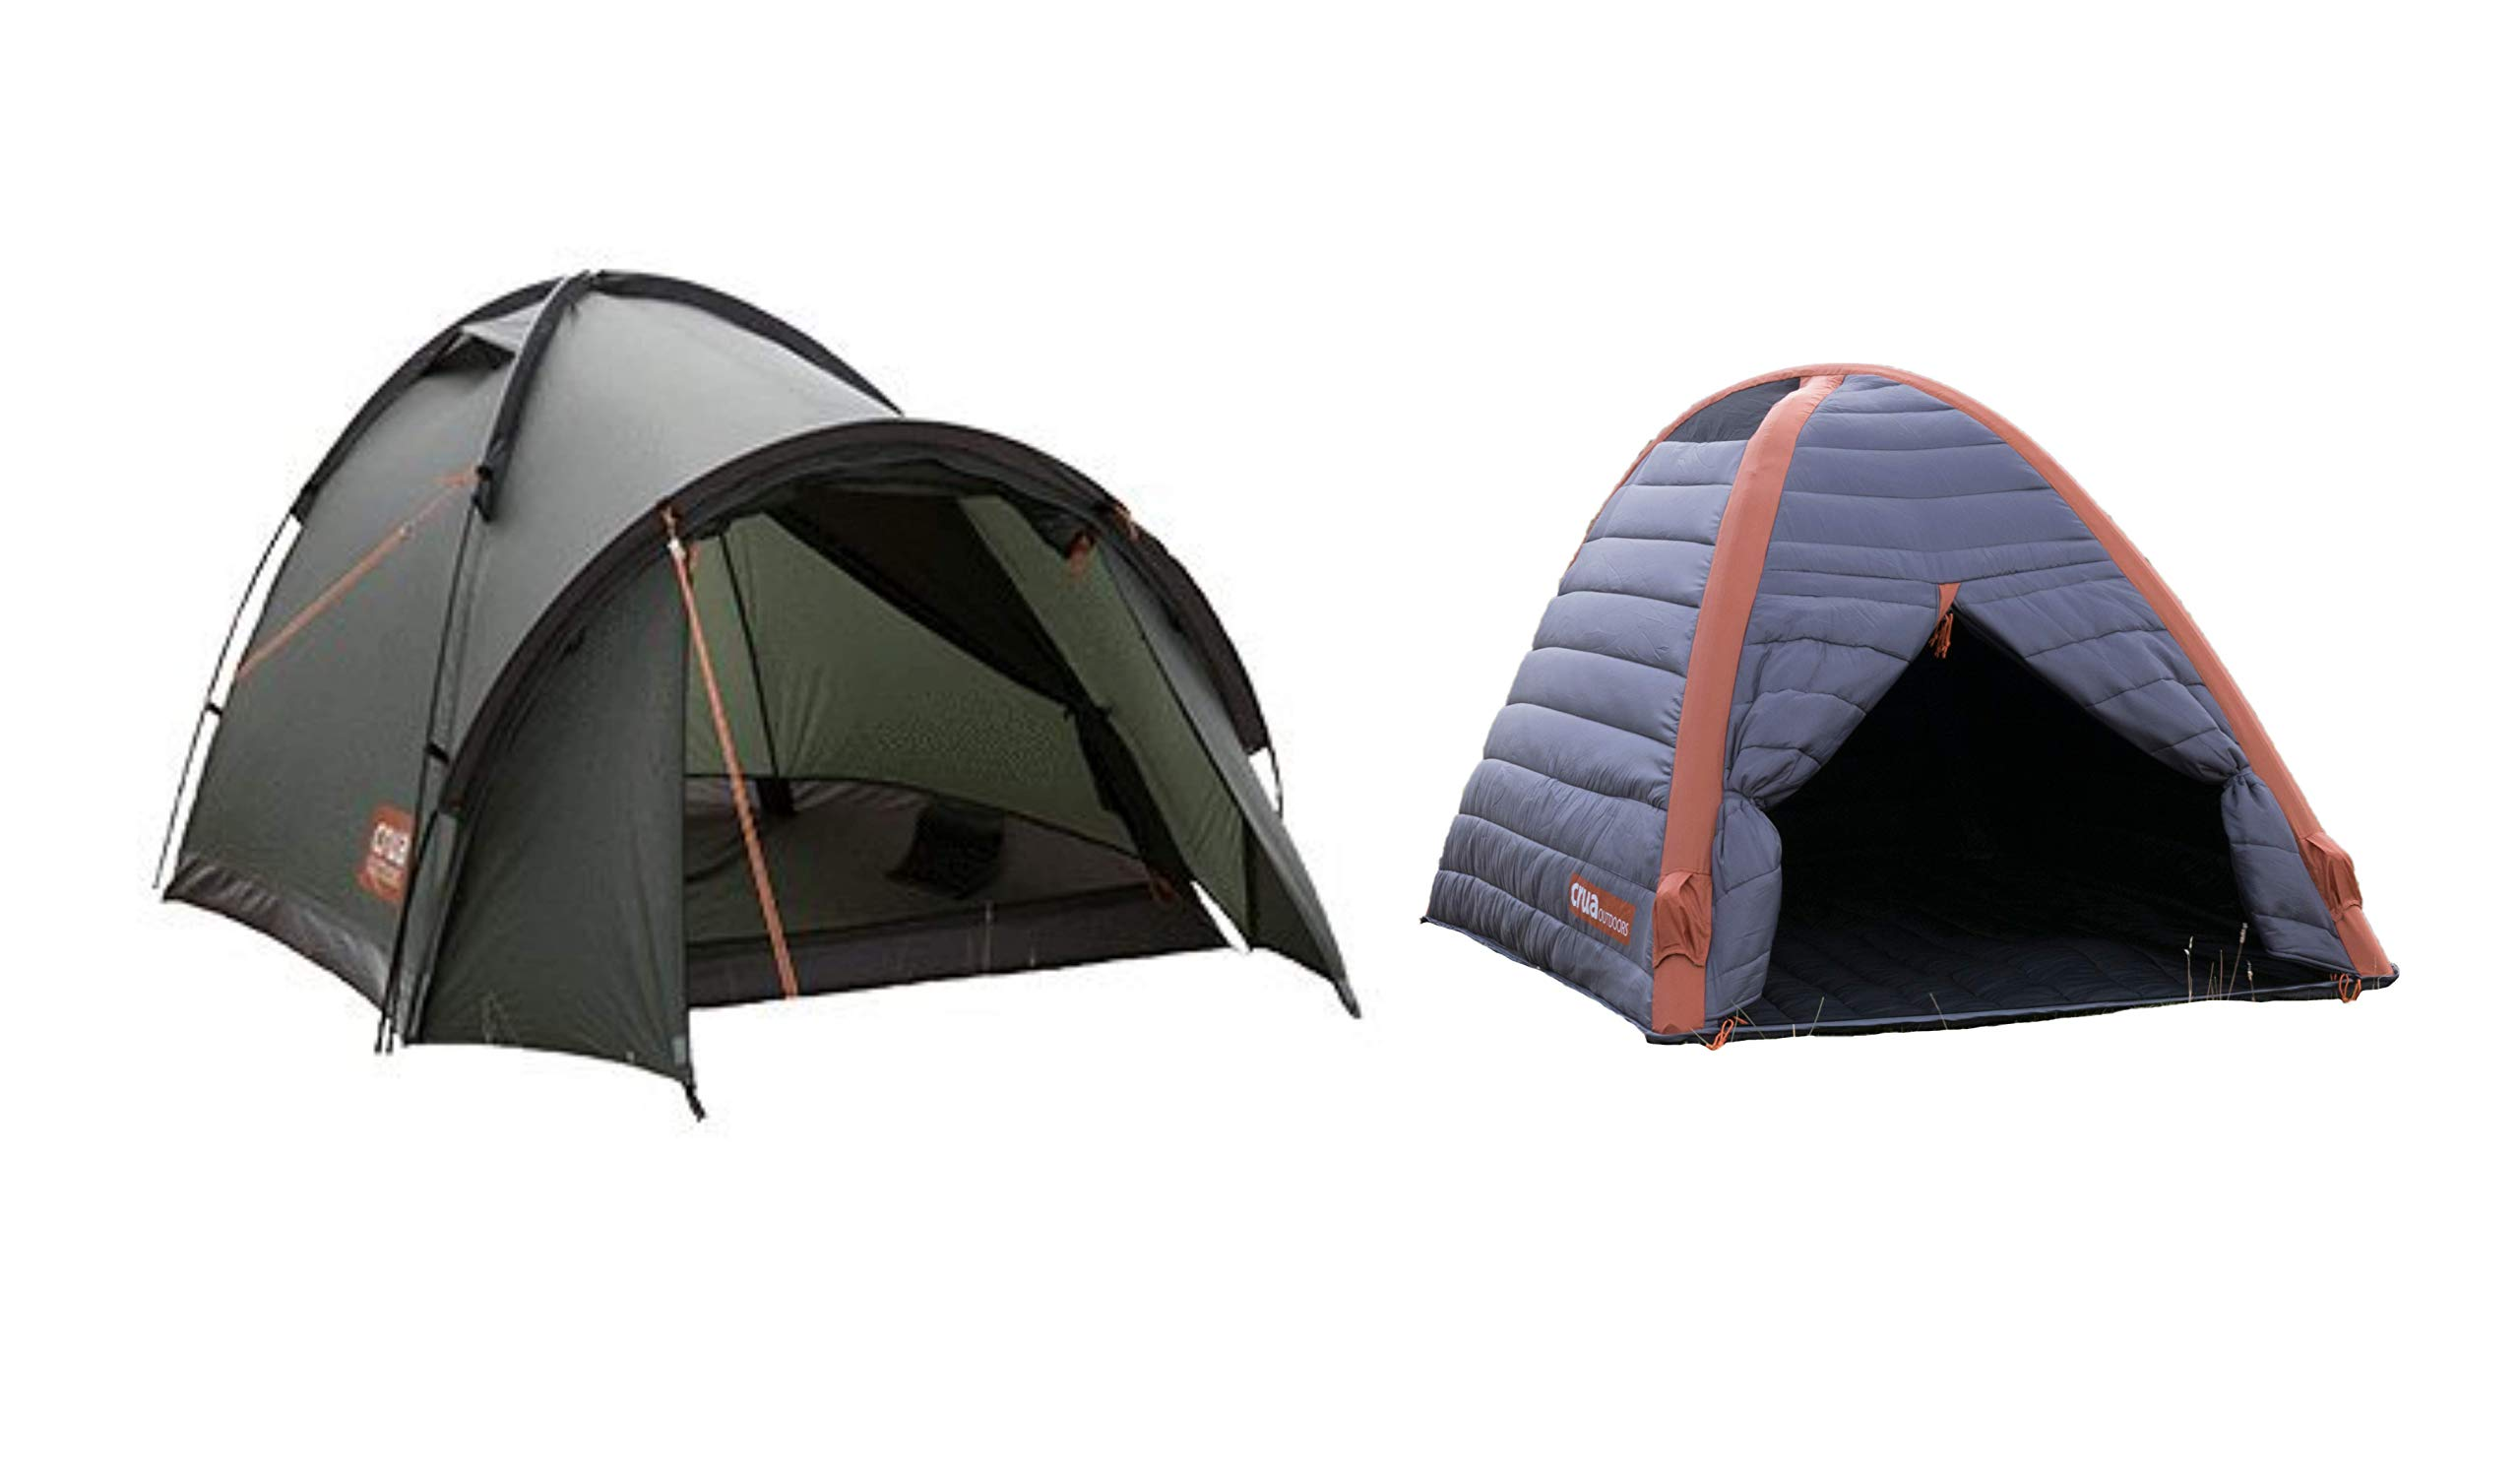 Crua Duo Cocoon Combo Tent: Waterproof Hiking Camping Durable, Breathable Insulated Expedition Setup, 2 Person Tent with Aluminum/Air Frame (Combo)